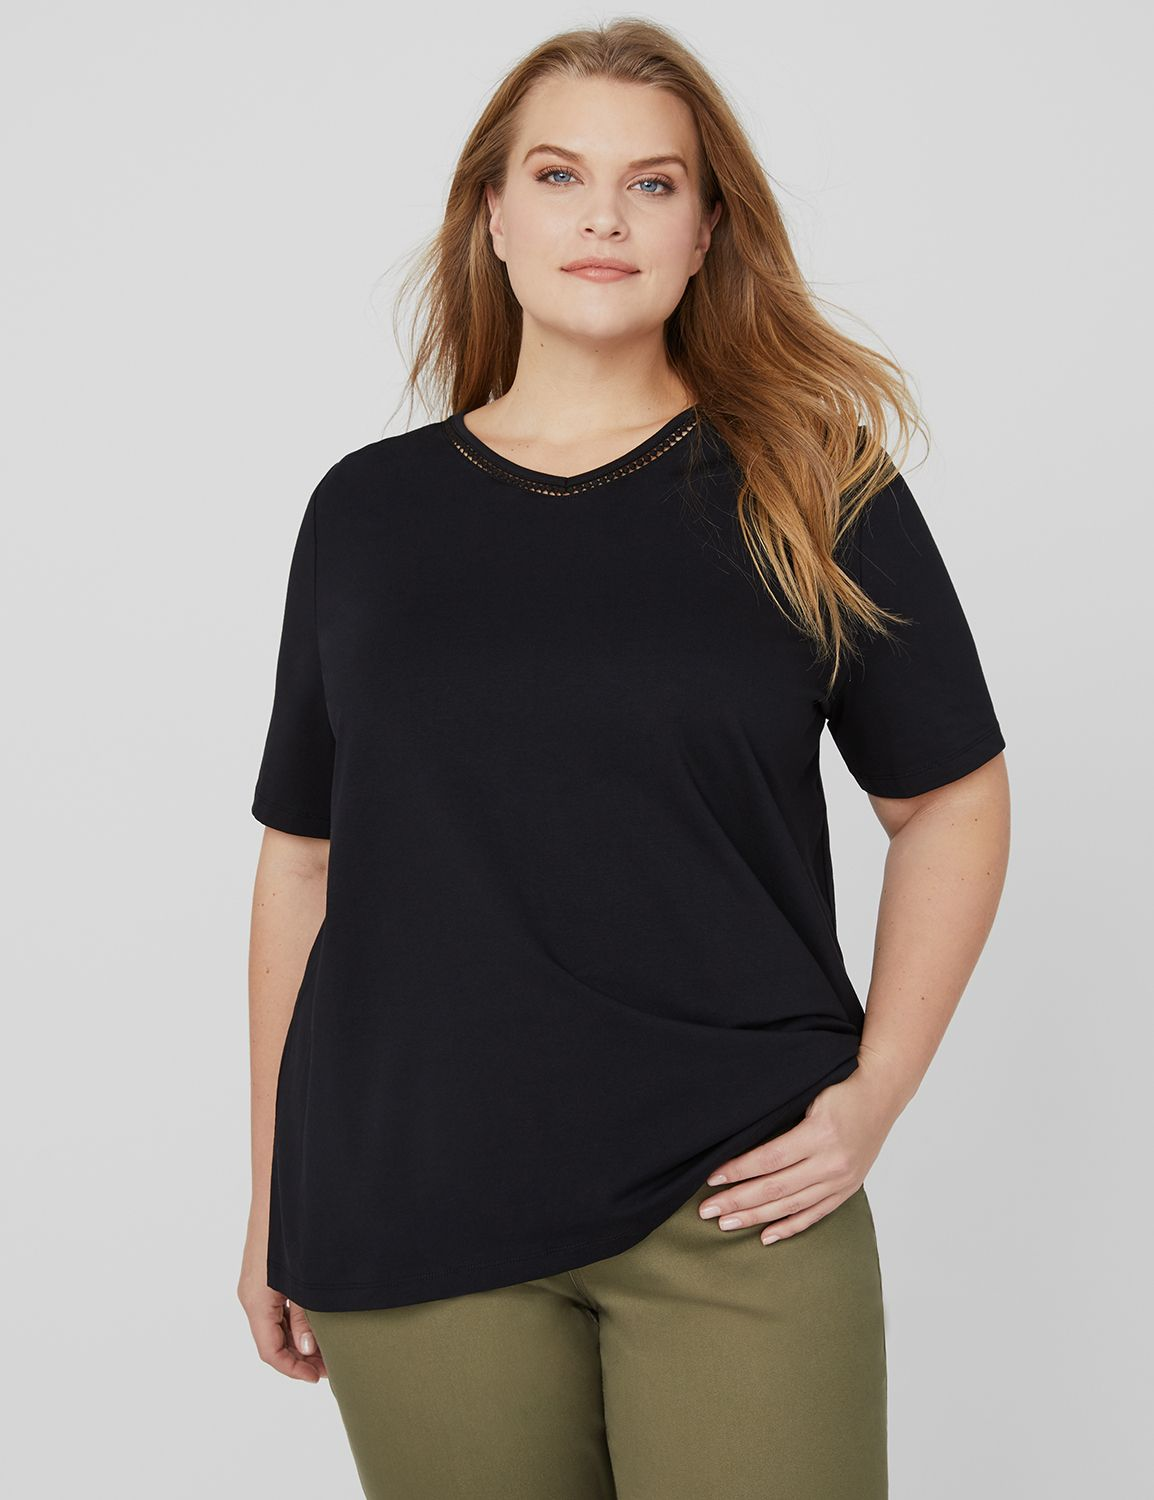 Suprema Lavish Tee 1087747 SS Basic Vneck with trim- S MP-300101124